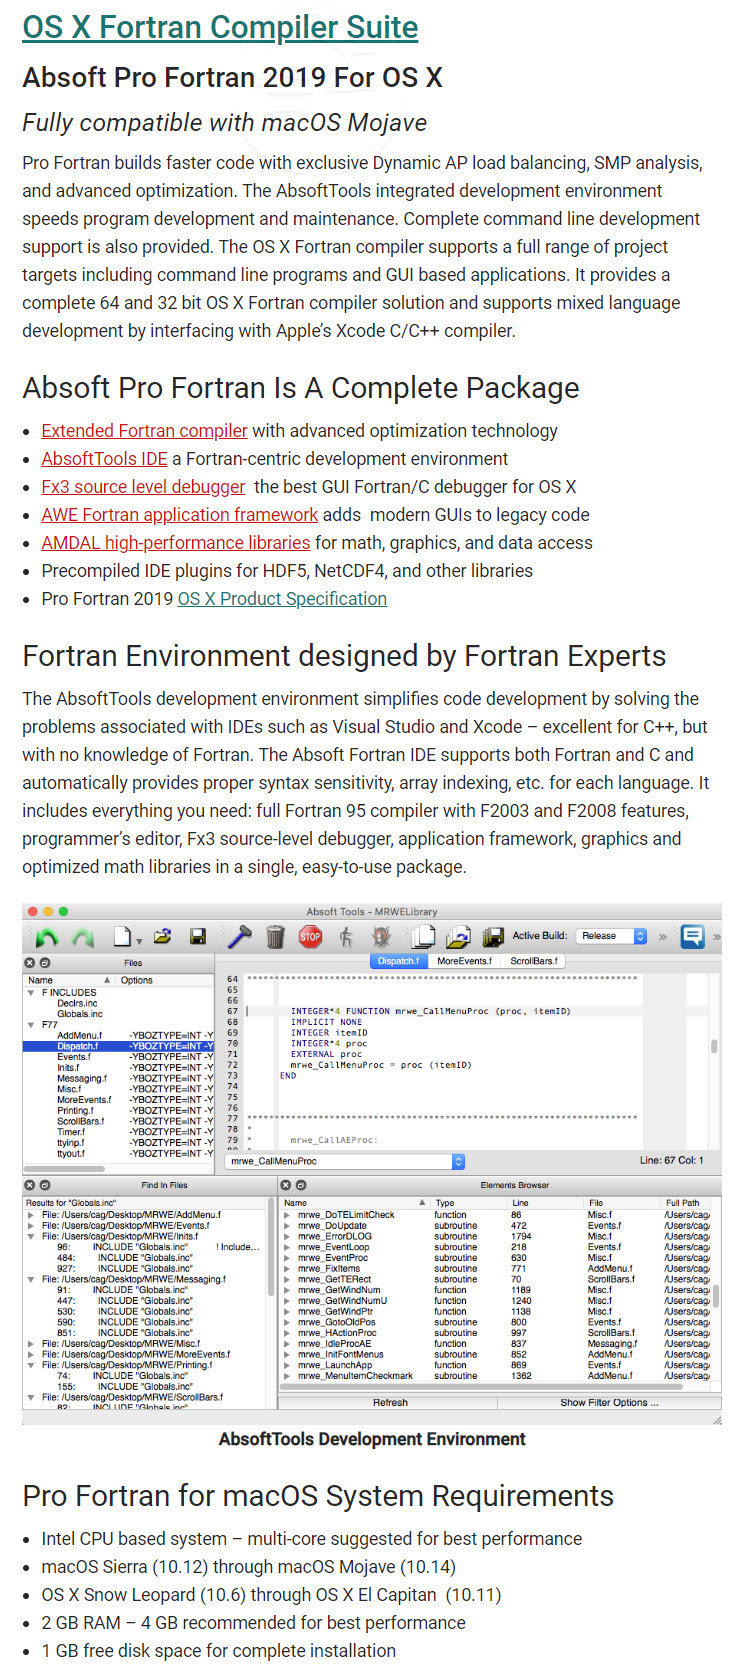 Absoft #Pro #Fortran 2019 For OS X (歡迎詢價) - Fully